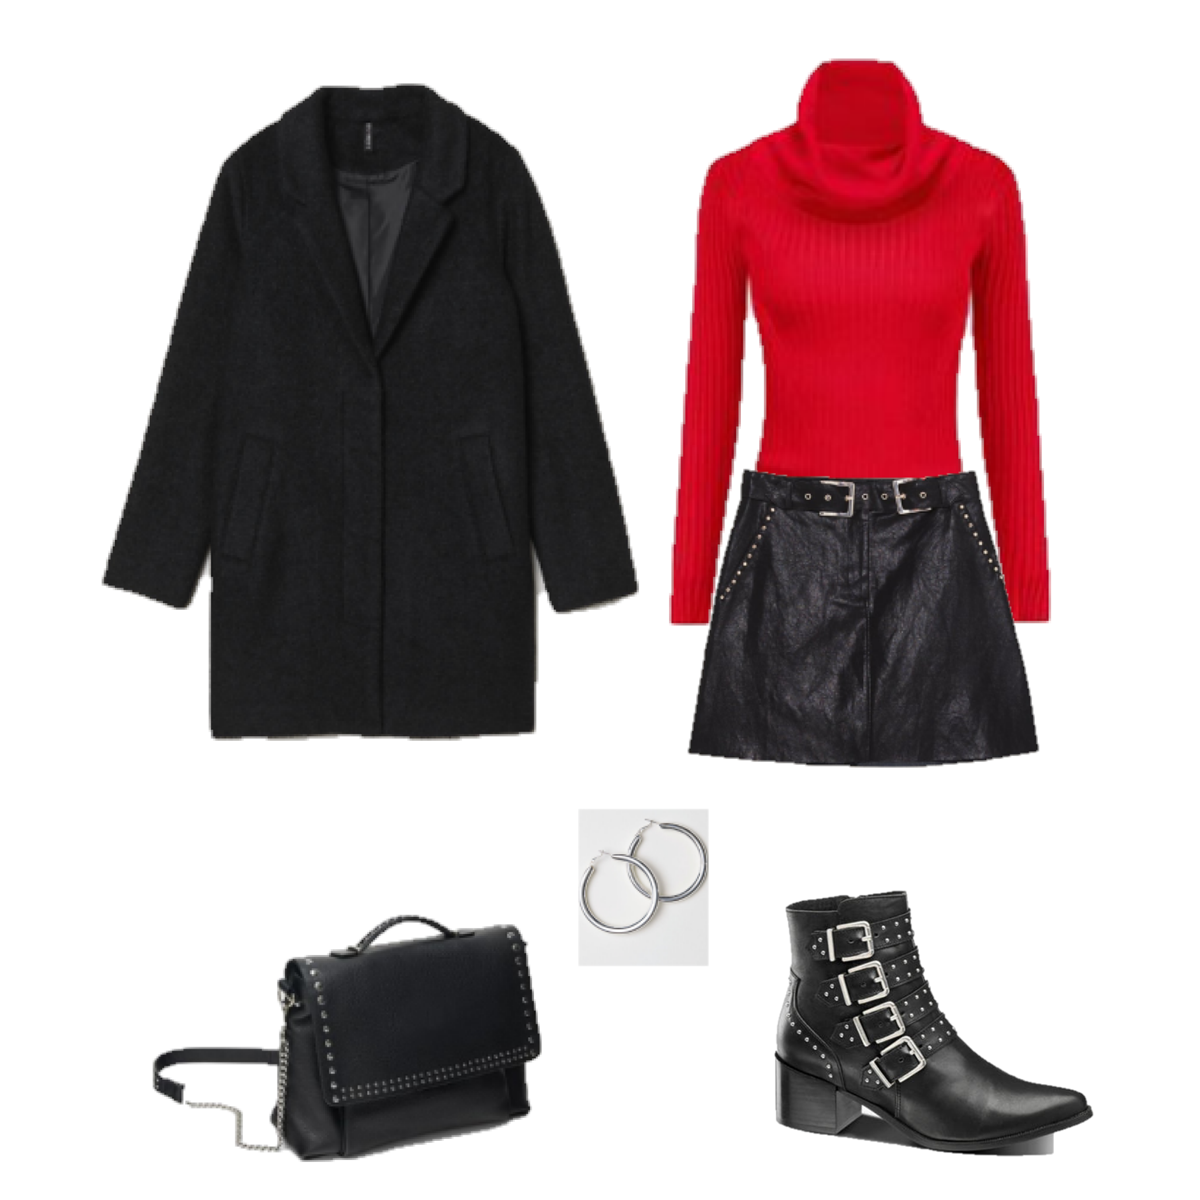 Outfit of the Day: Red and Leather